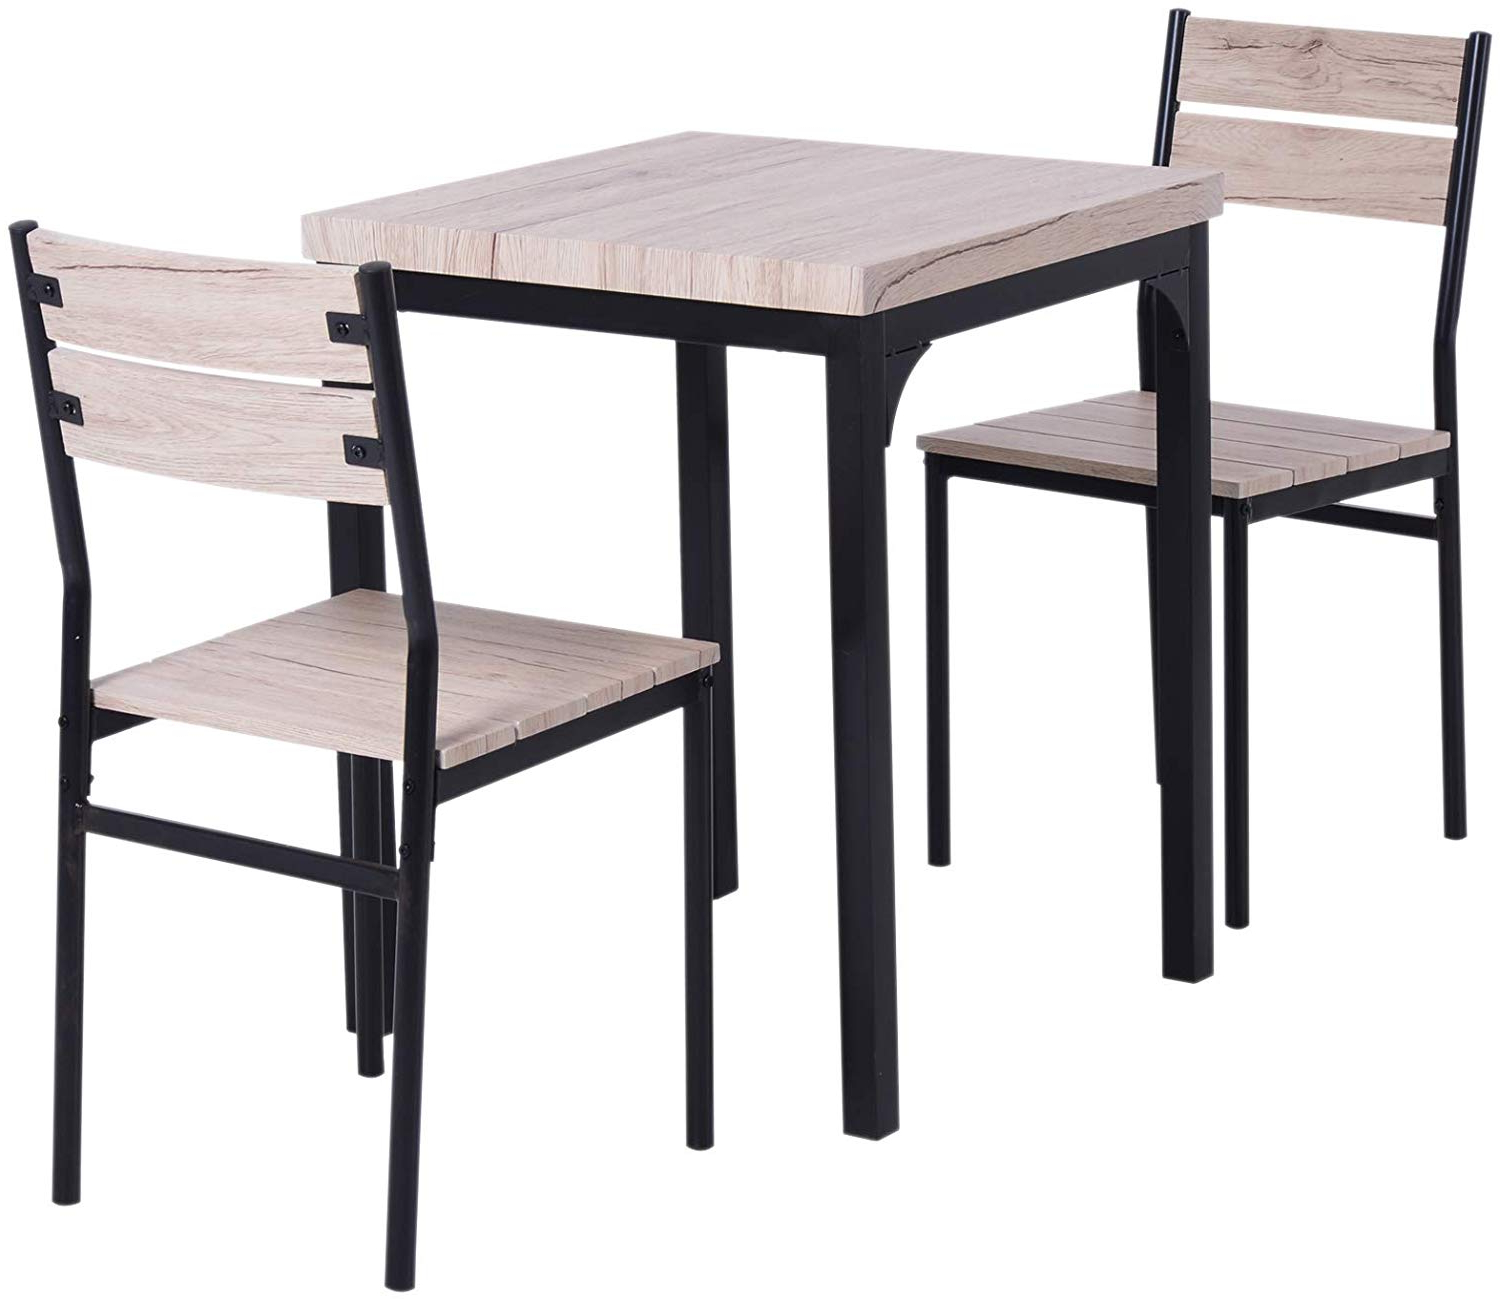 Latest Homcom Rustic Country Wood Top 3 Piece Kitchen Table Dining Set W/chairs Regarding Rustic Country 8 Seating Casual Dining Tables (View 5 of 25)